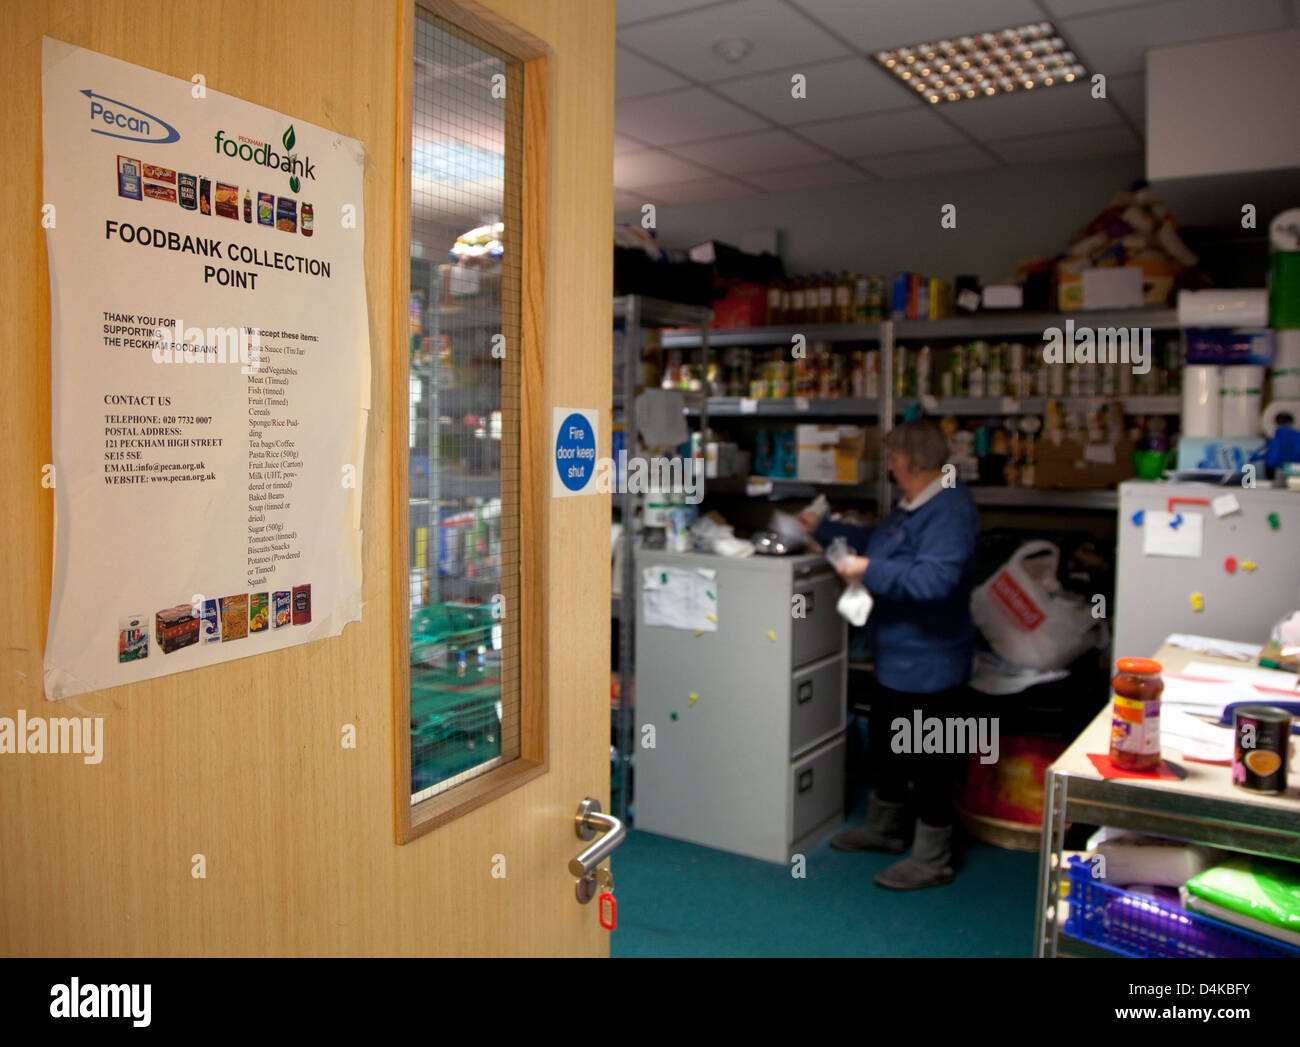 Food bank in Peckham, South London run by charity Trussell Trust - Stock Image